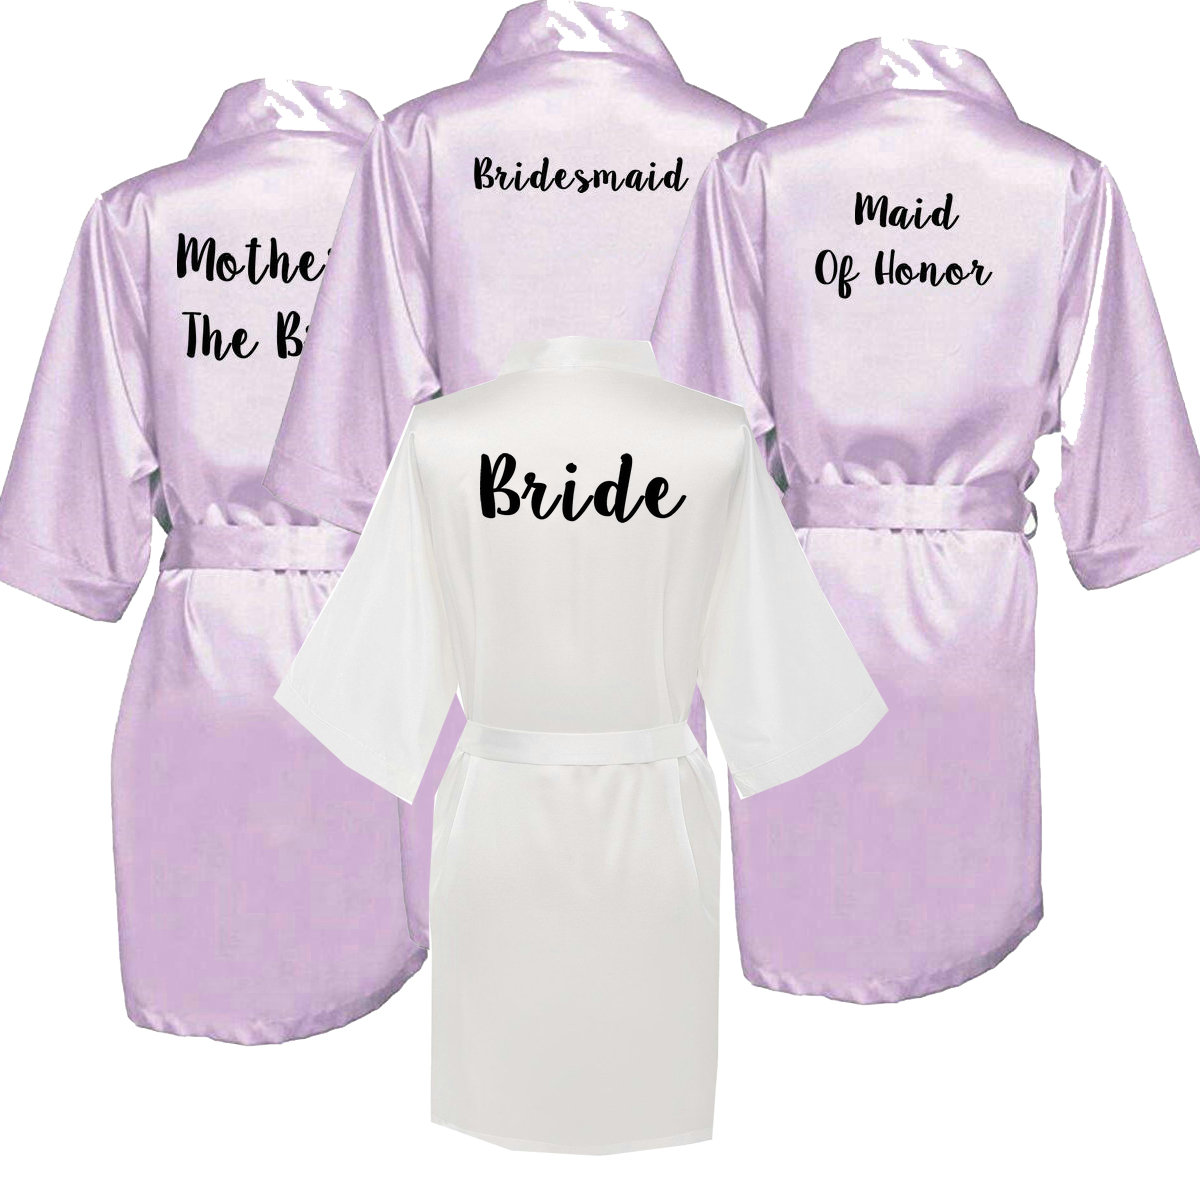 Owiter new bride bridesmaid robe with white black letters mother sister of the wedding gift bathrobe kimono satin robes